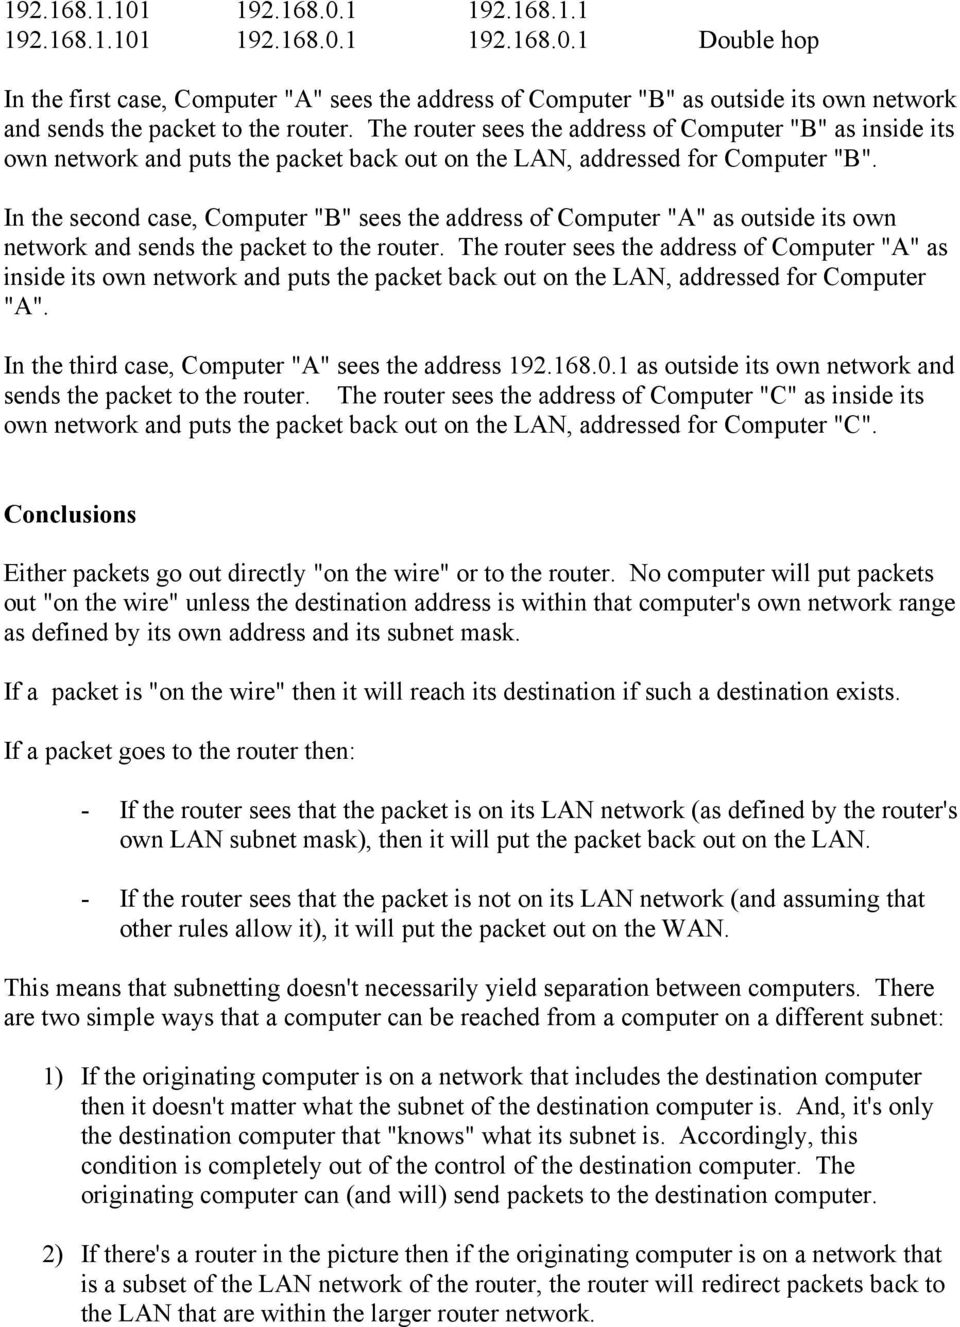 "In the second case, Computer ""B"" sees the address of Computer ""A"" as outside its own network and sends the packet to the router."